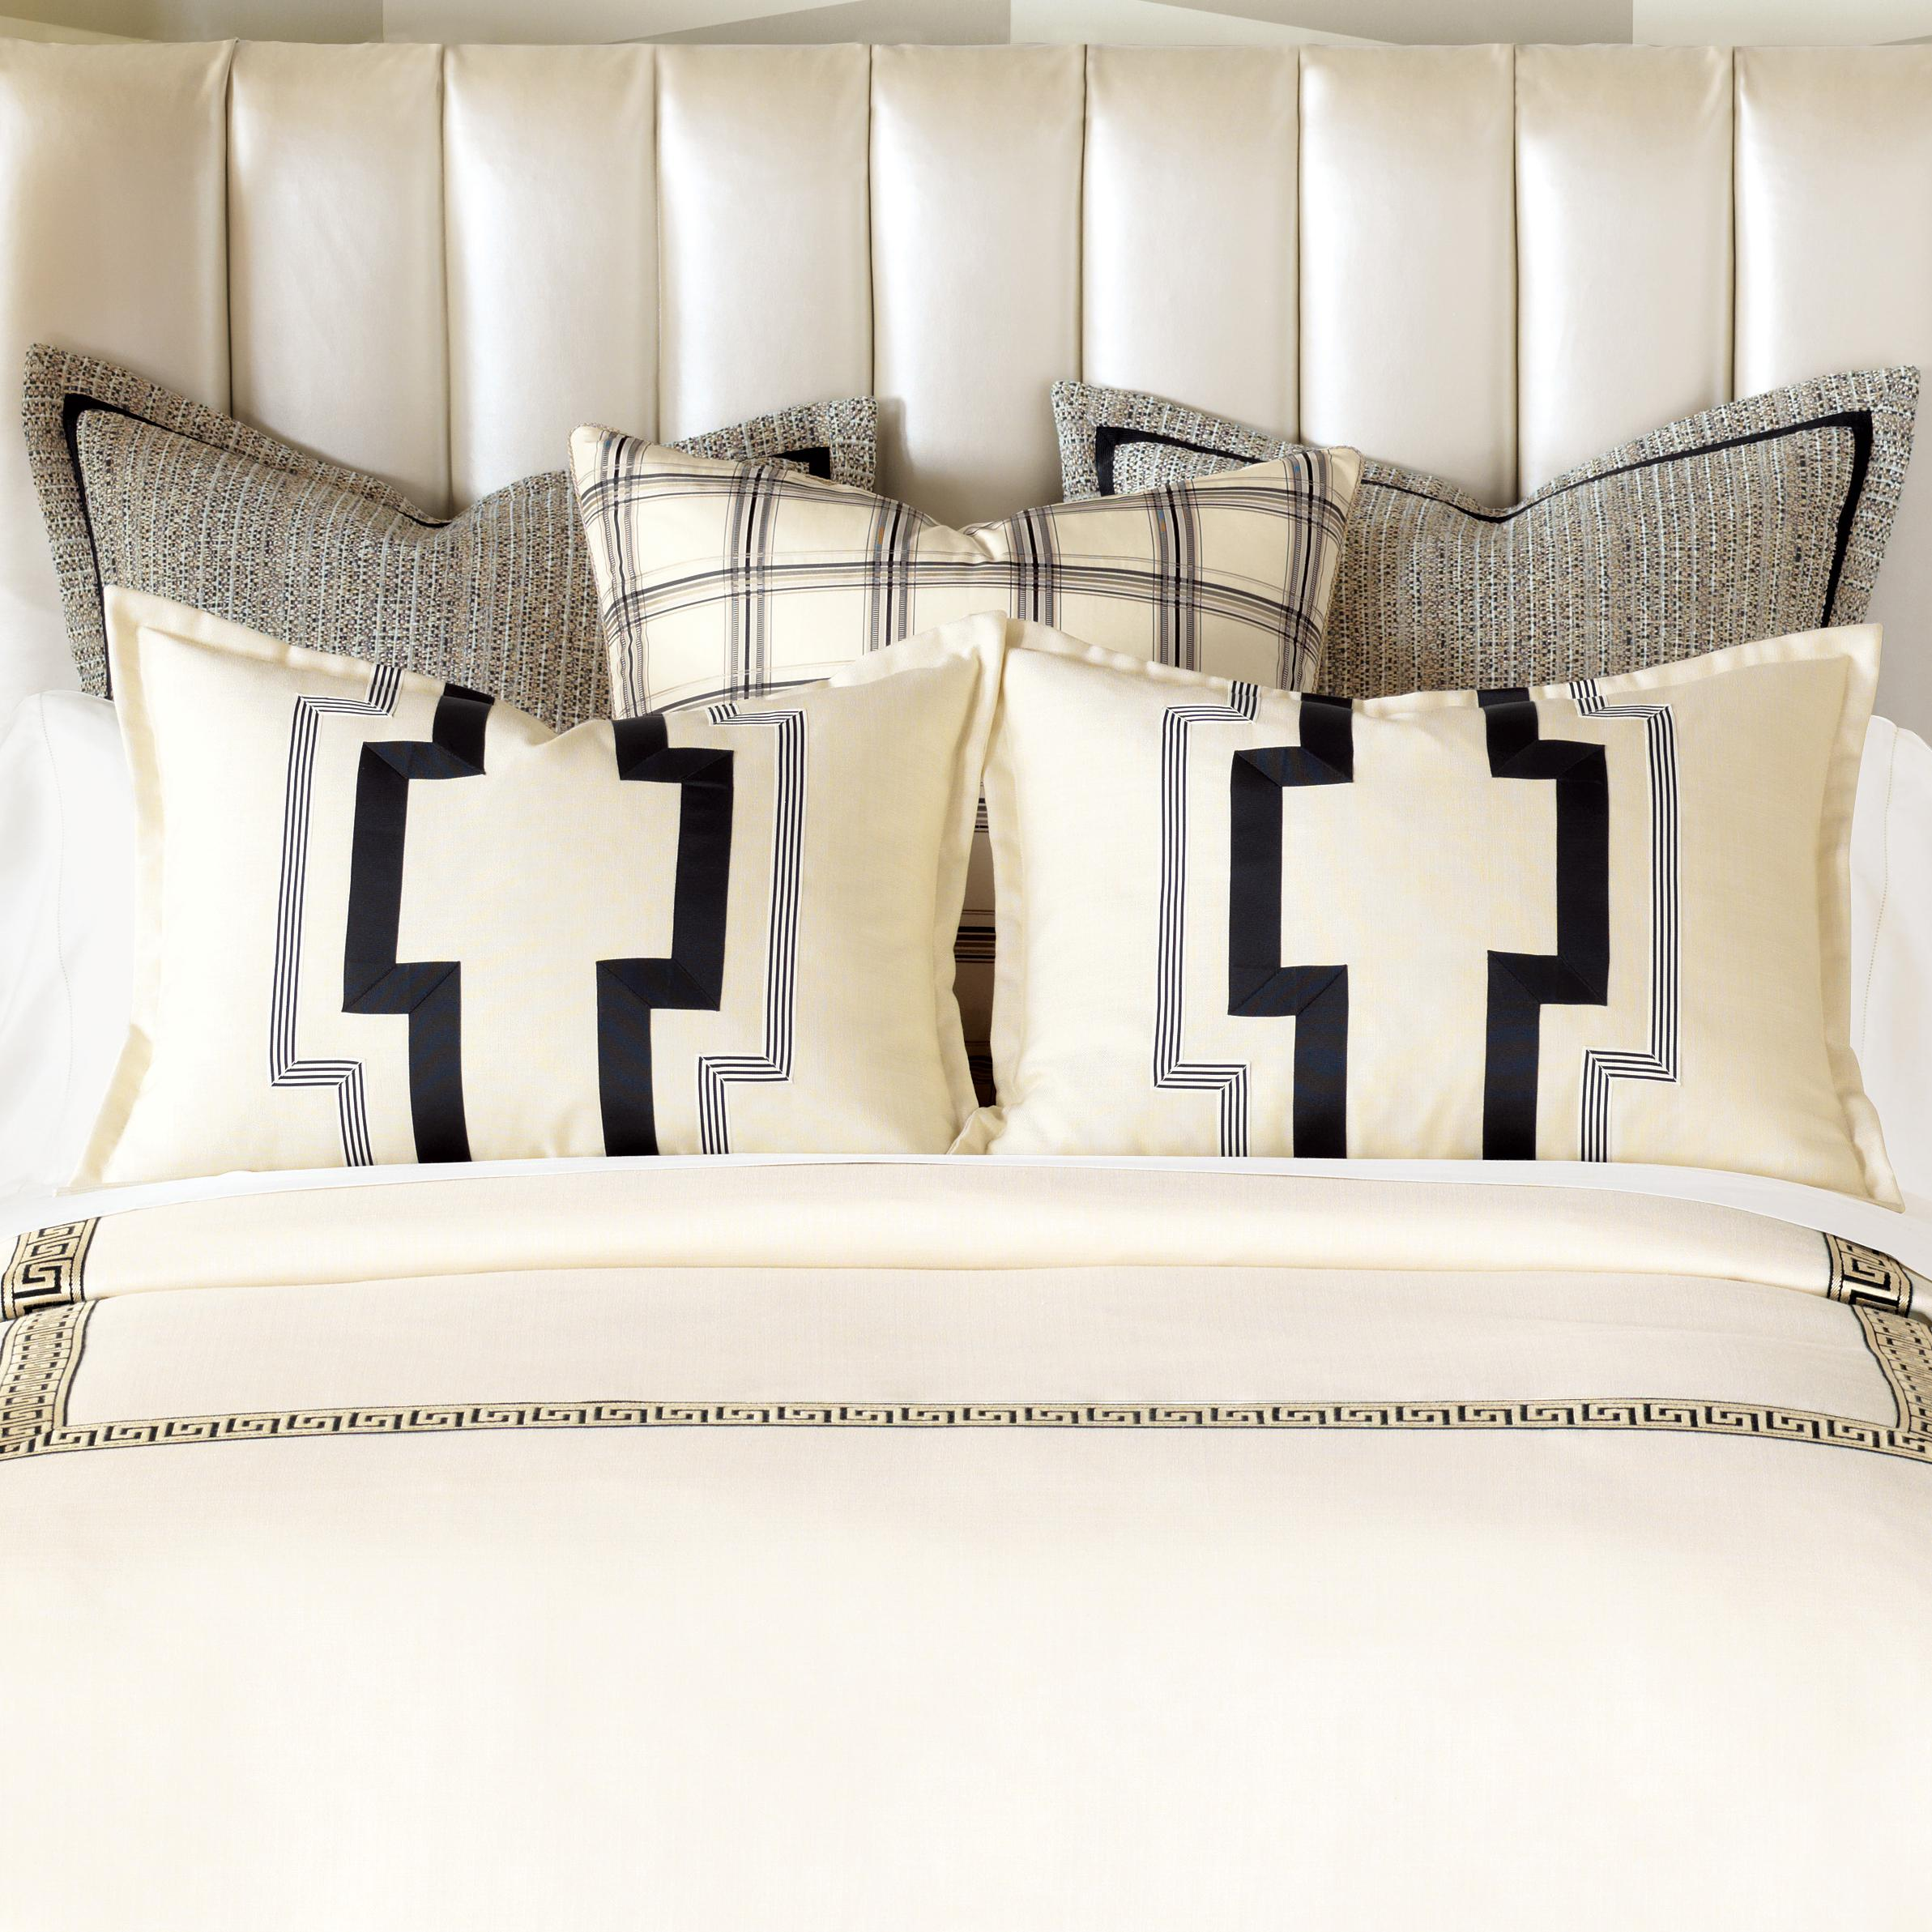 Abernathy Bolster Sham by Eastern Accents at Alison Craig Home Furnishings